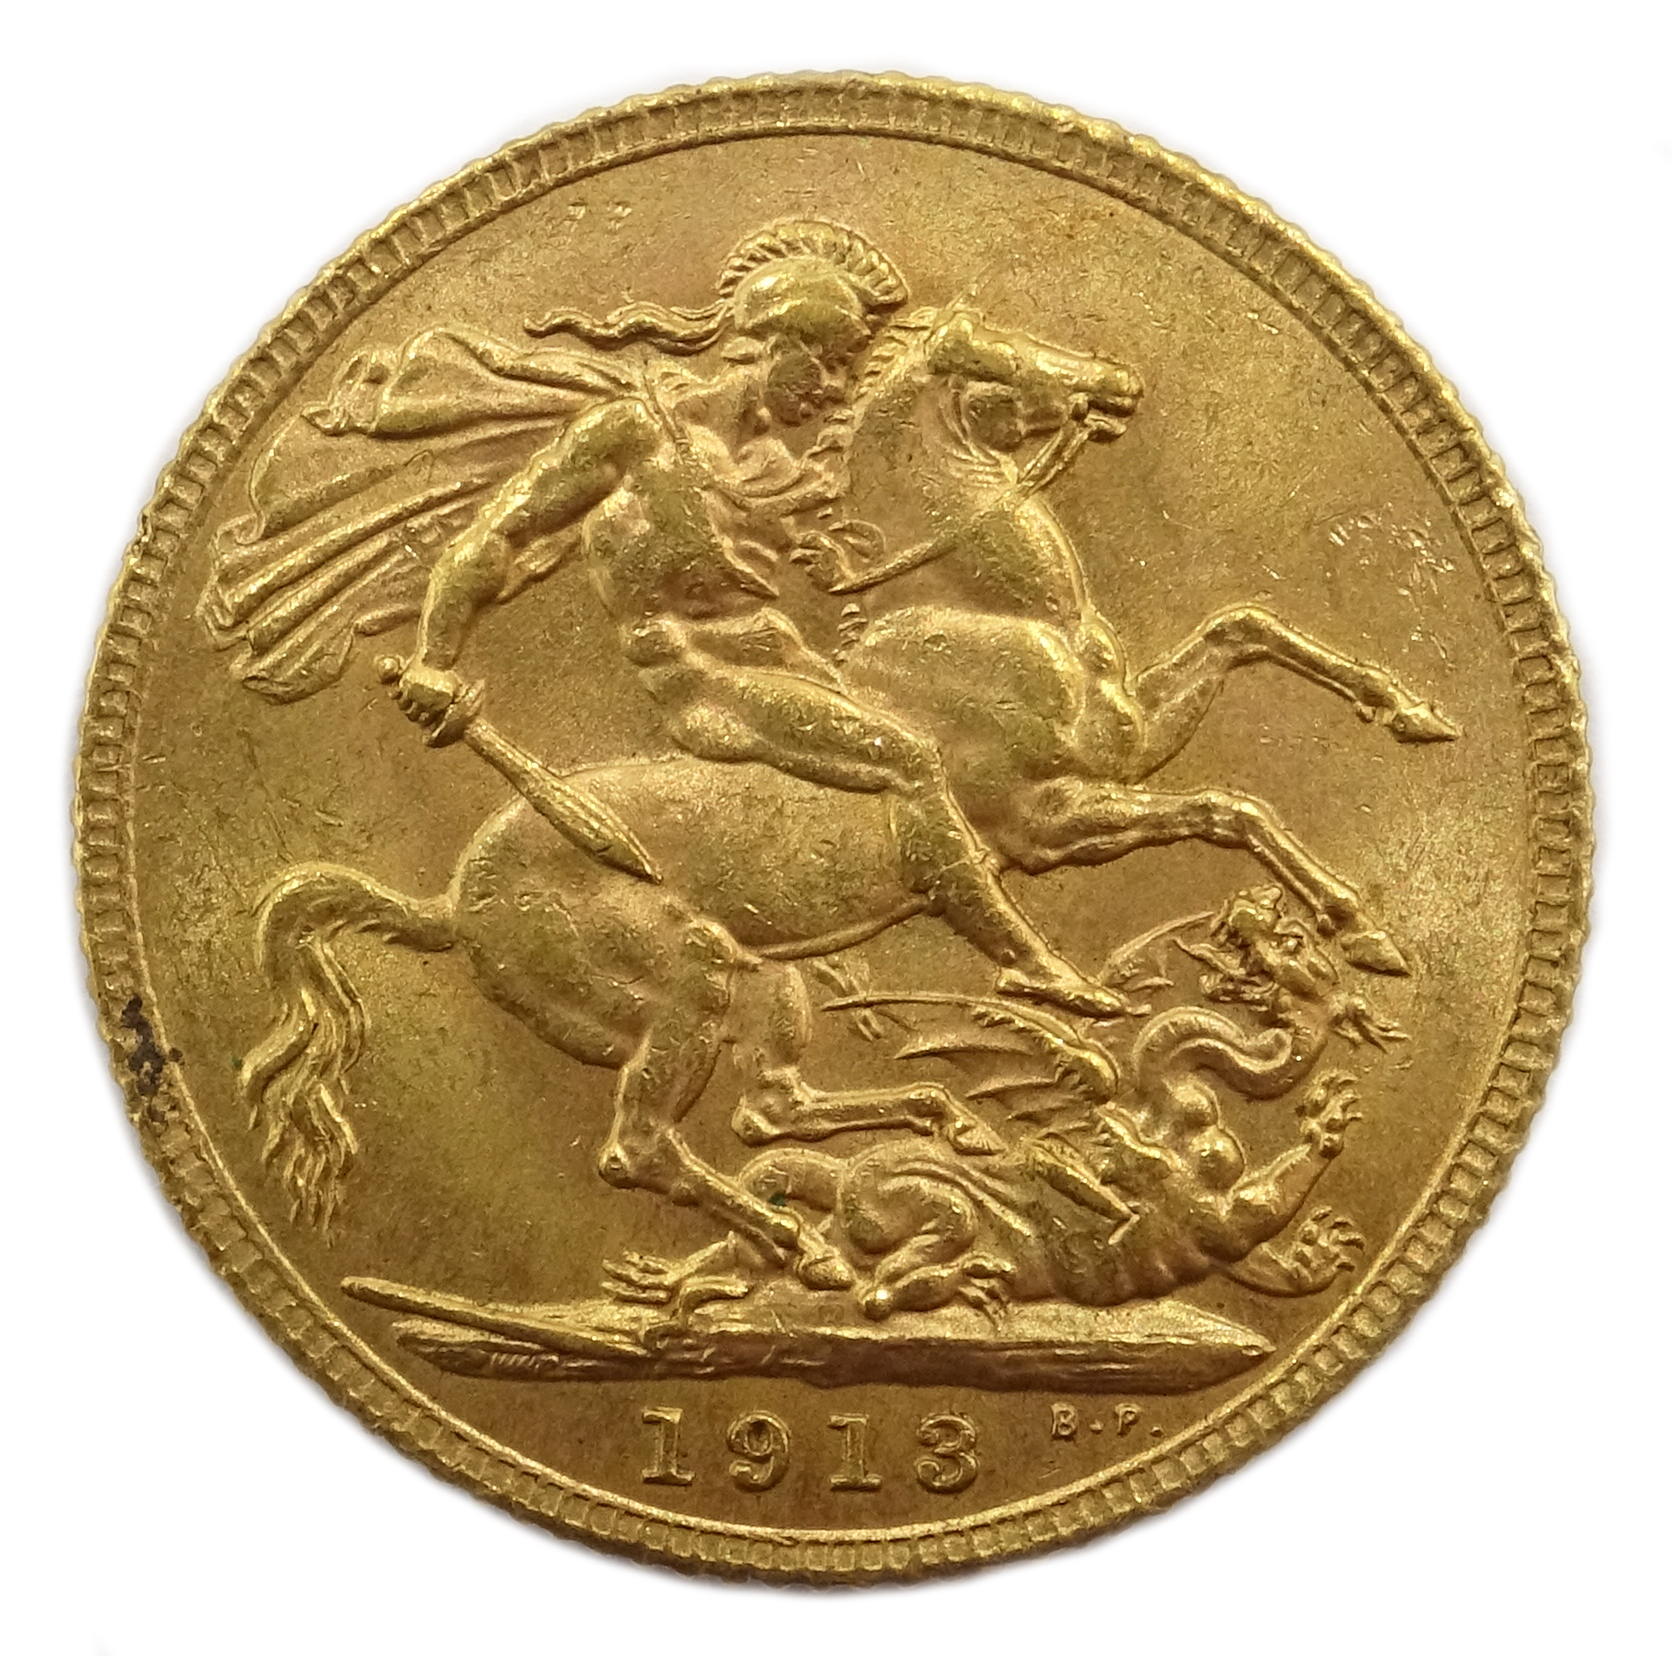 Lot 1038 - 1913 gold full sovereign Condition Report & Further Details <a href='//www.